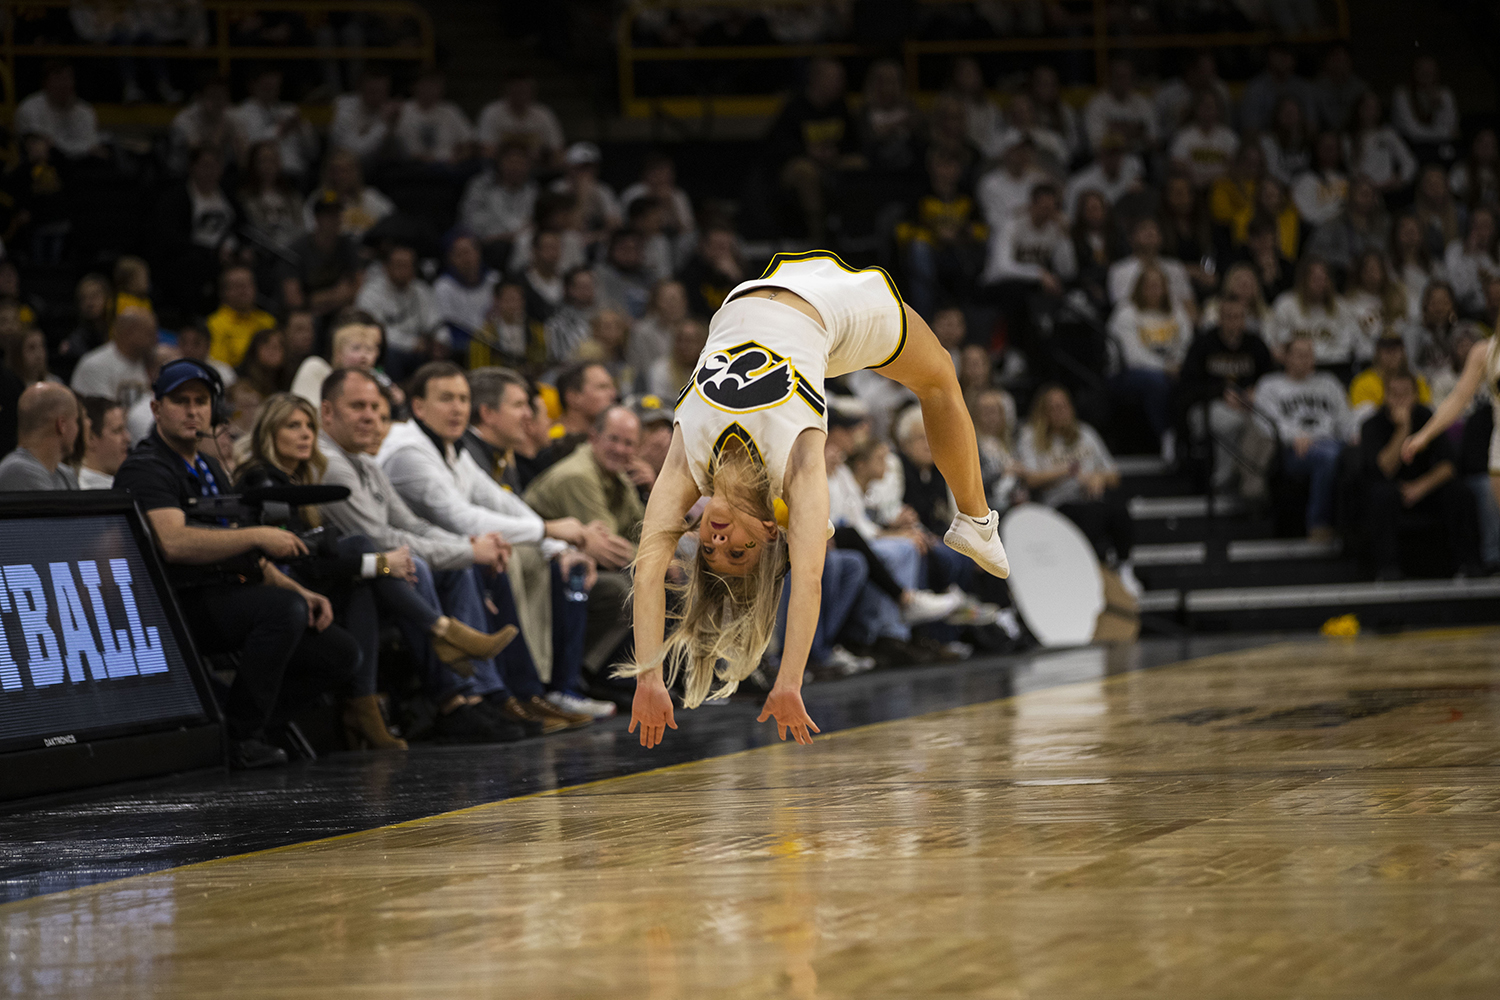 An+Iowa+Spirit+Squad+member+does+a+back+handspring+during+the+Iowa%2FIllinois+men%27s+basketball+game+at+Carver-Hawkeye+Arena+on+Sunday%2C+January+20%2C+2019.+The+Hawkeyes+defeated+the+Fighting+Illini%2C+95-71.+